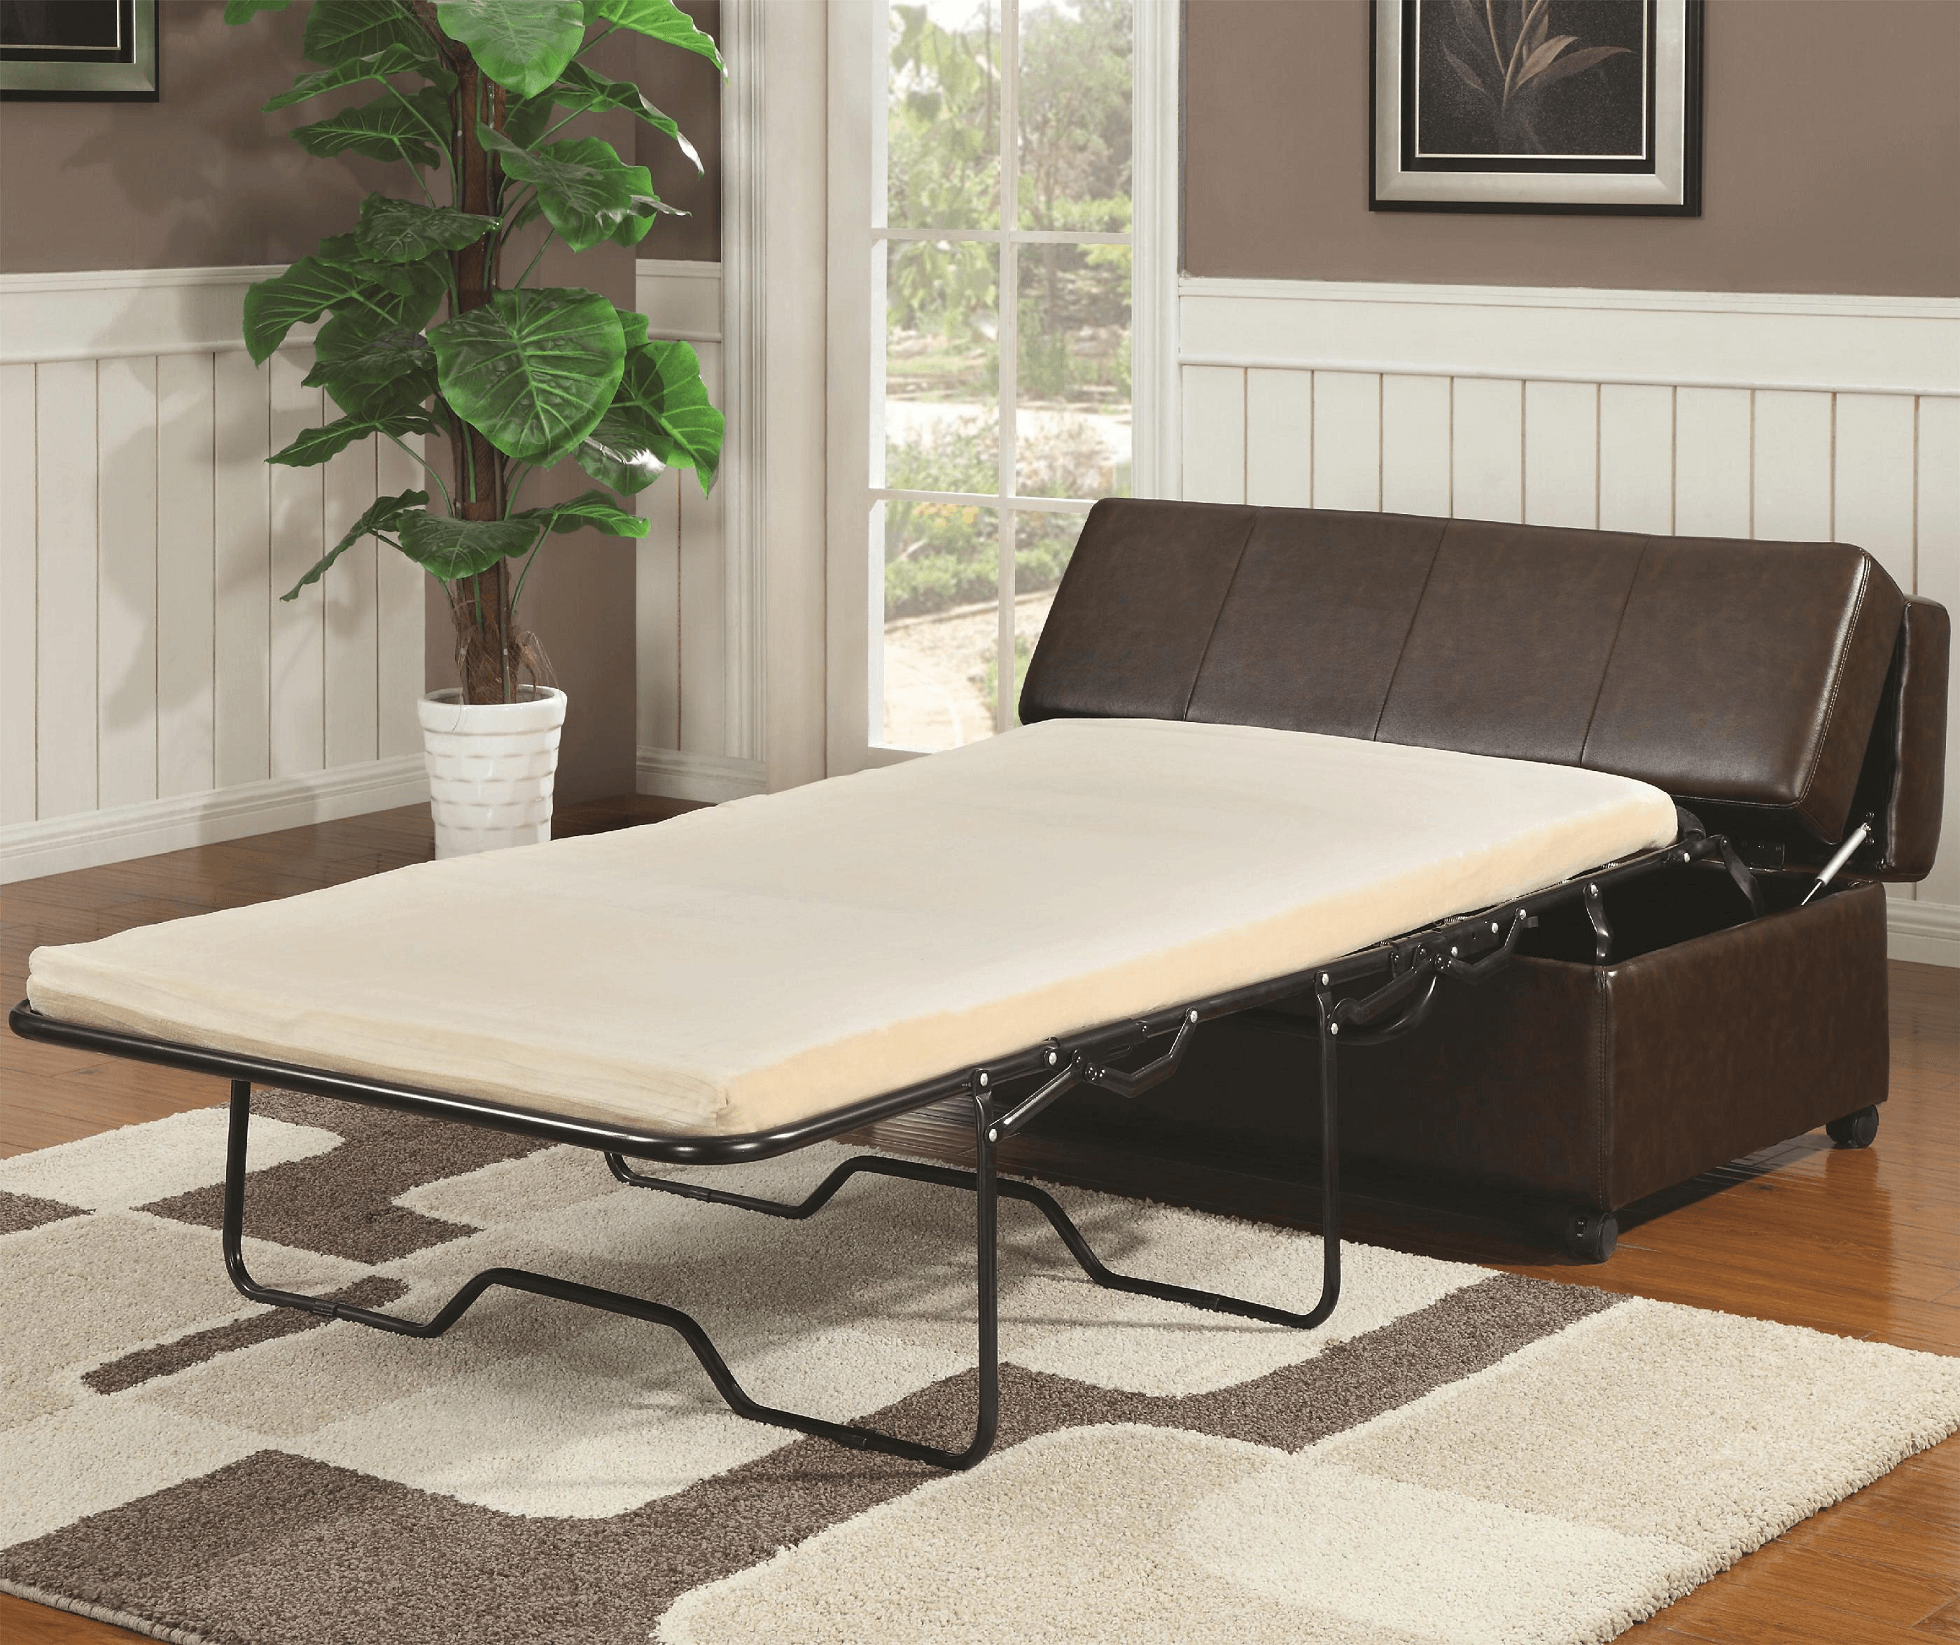 Folding bench table for small living room decor ideas